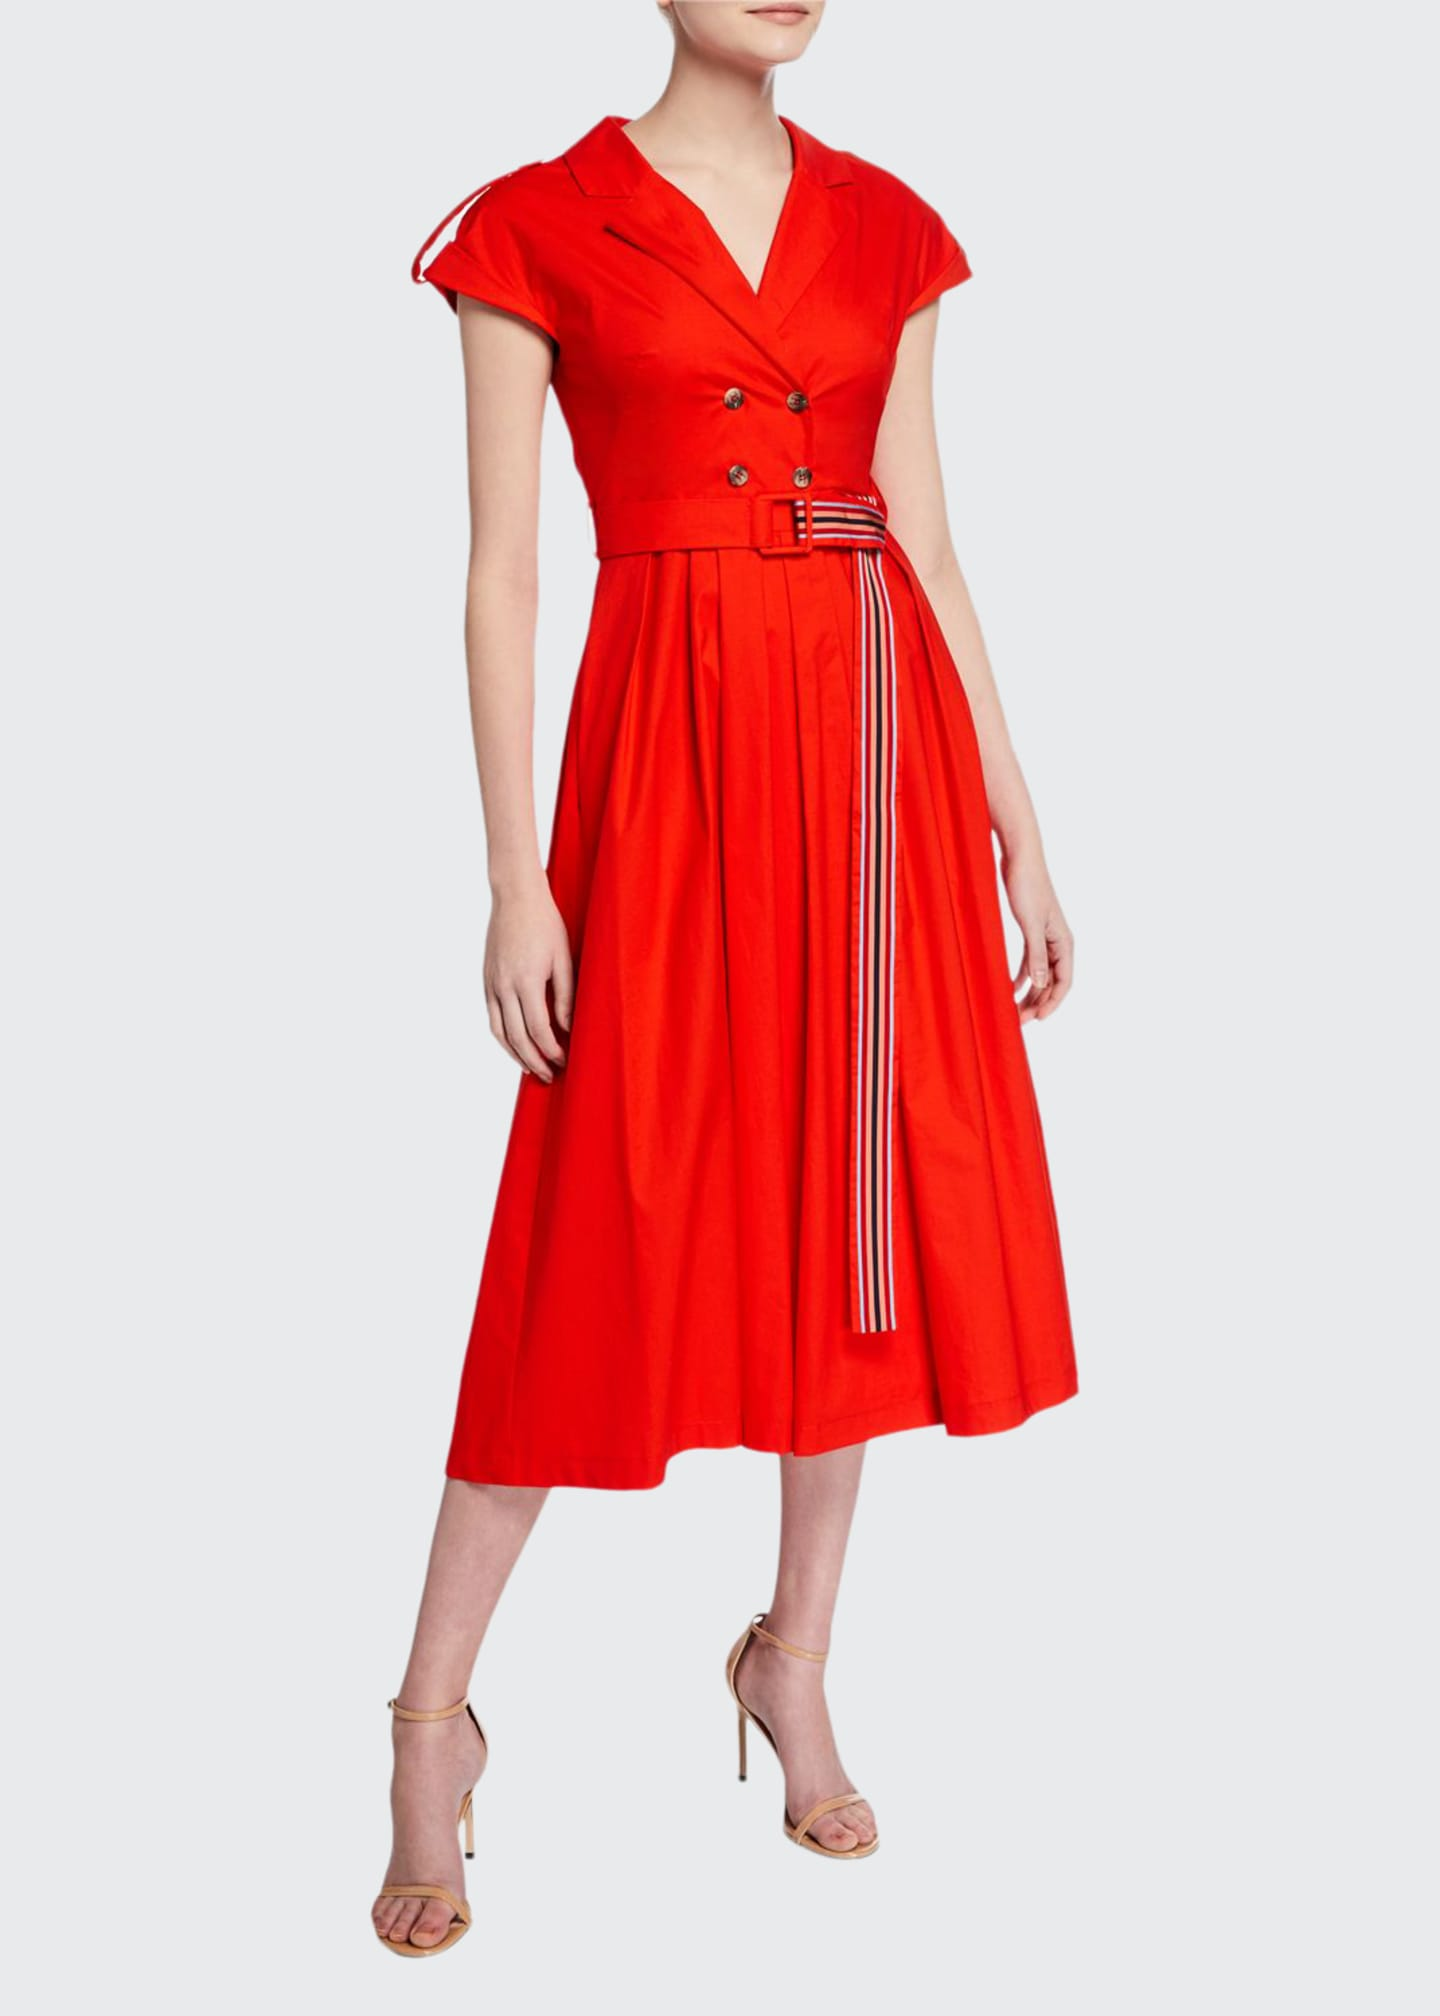 Lela Rose Double Breasted Shirtdress